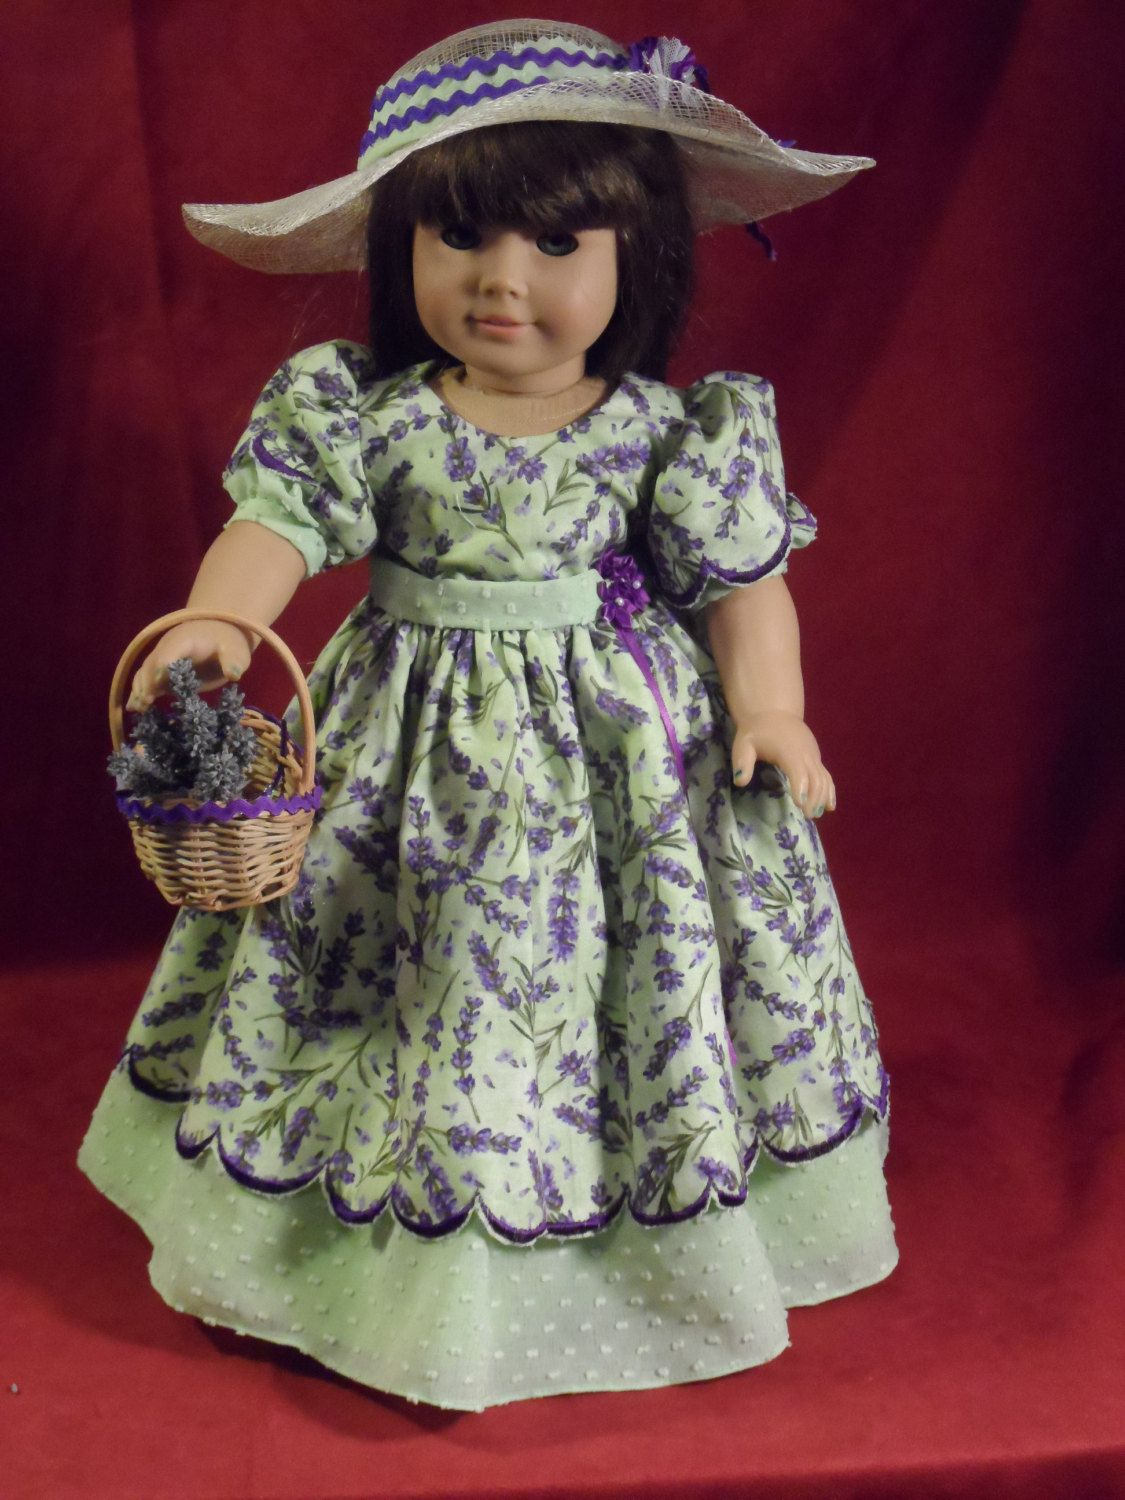 1fdbc44fa4b Lavender embroidered summer dress party dress OOAK for your. Find this Pin  and more on Historical costumes For American Girl Dolls ...